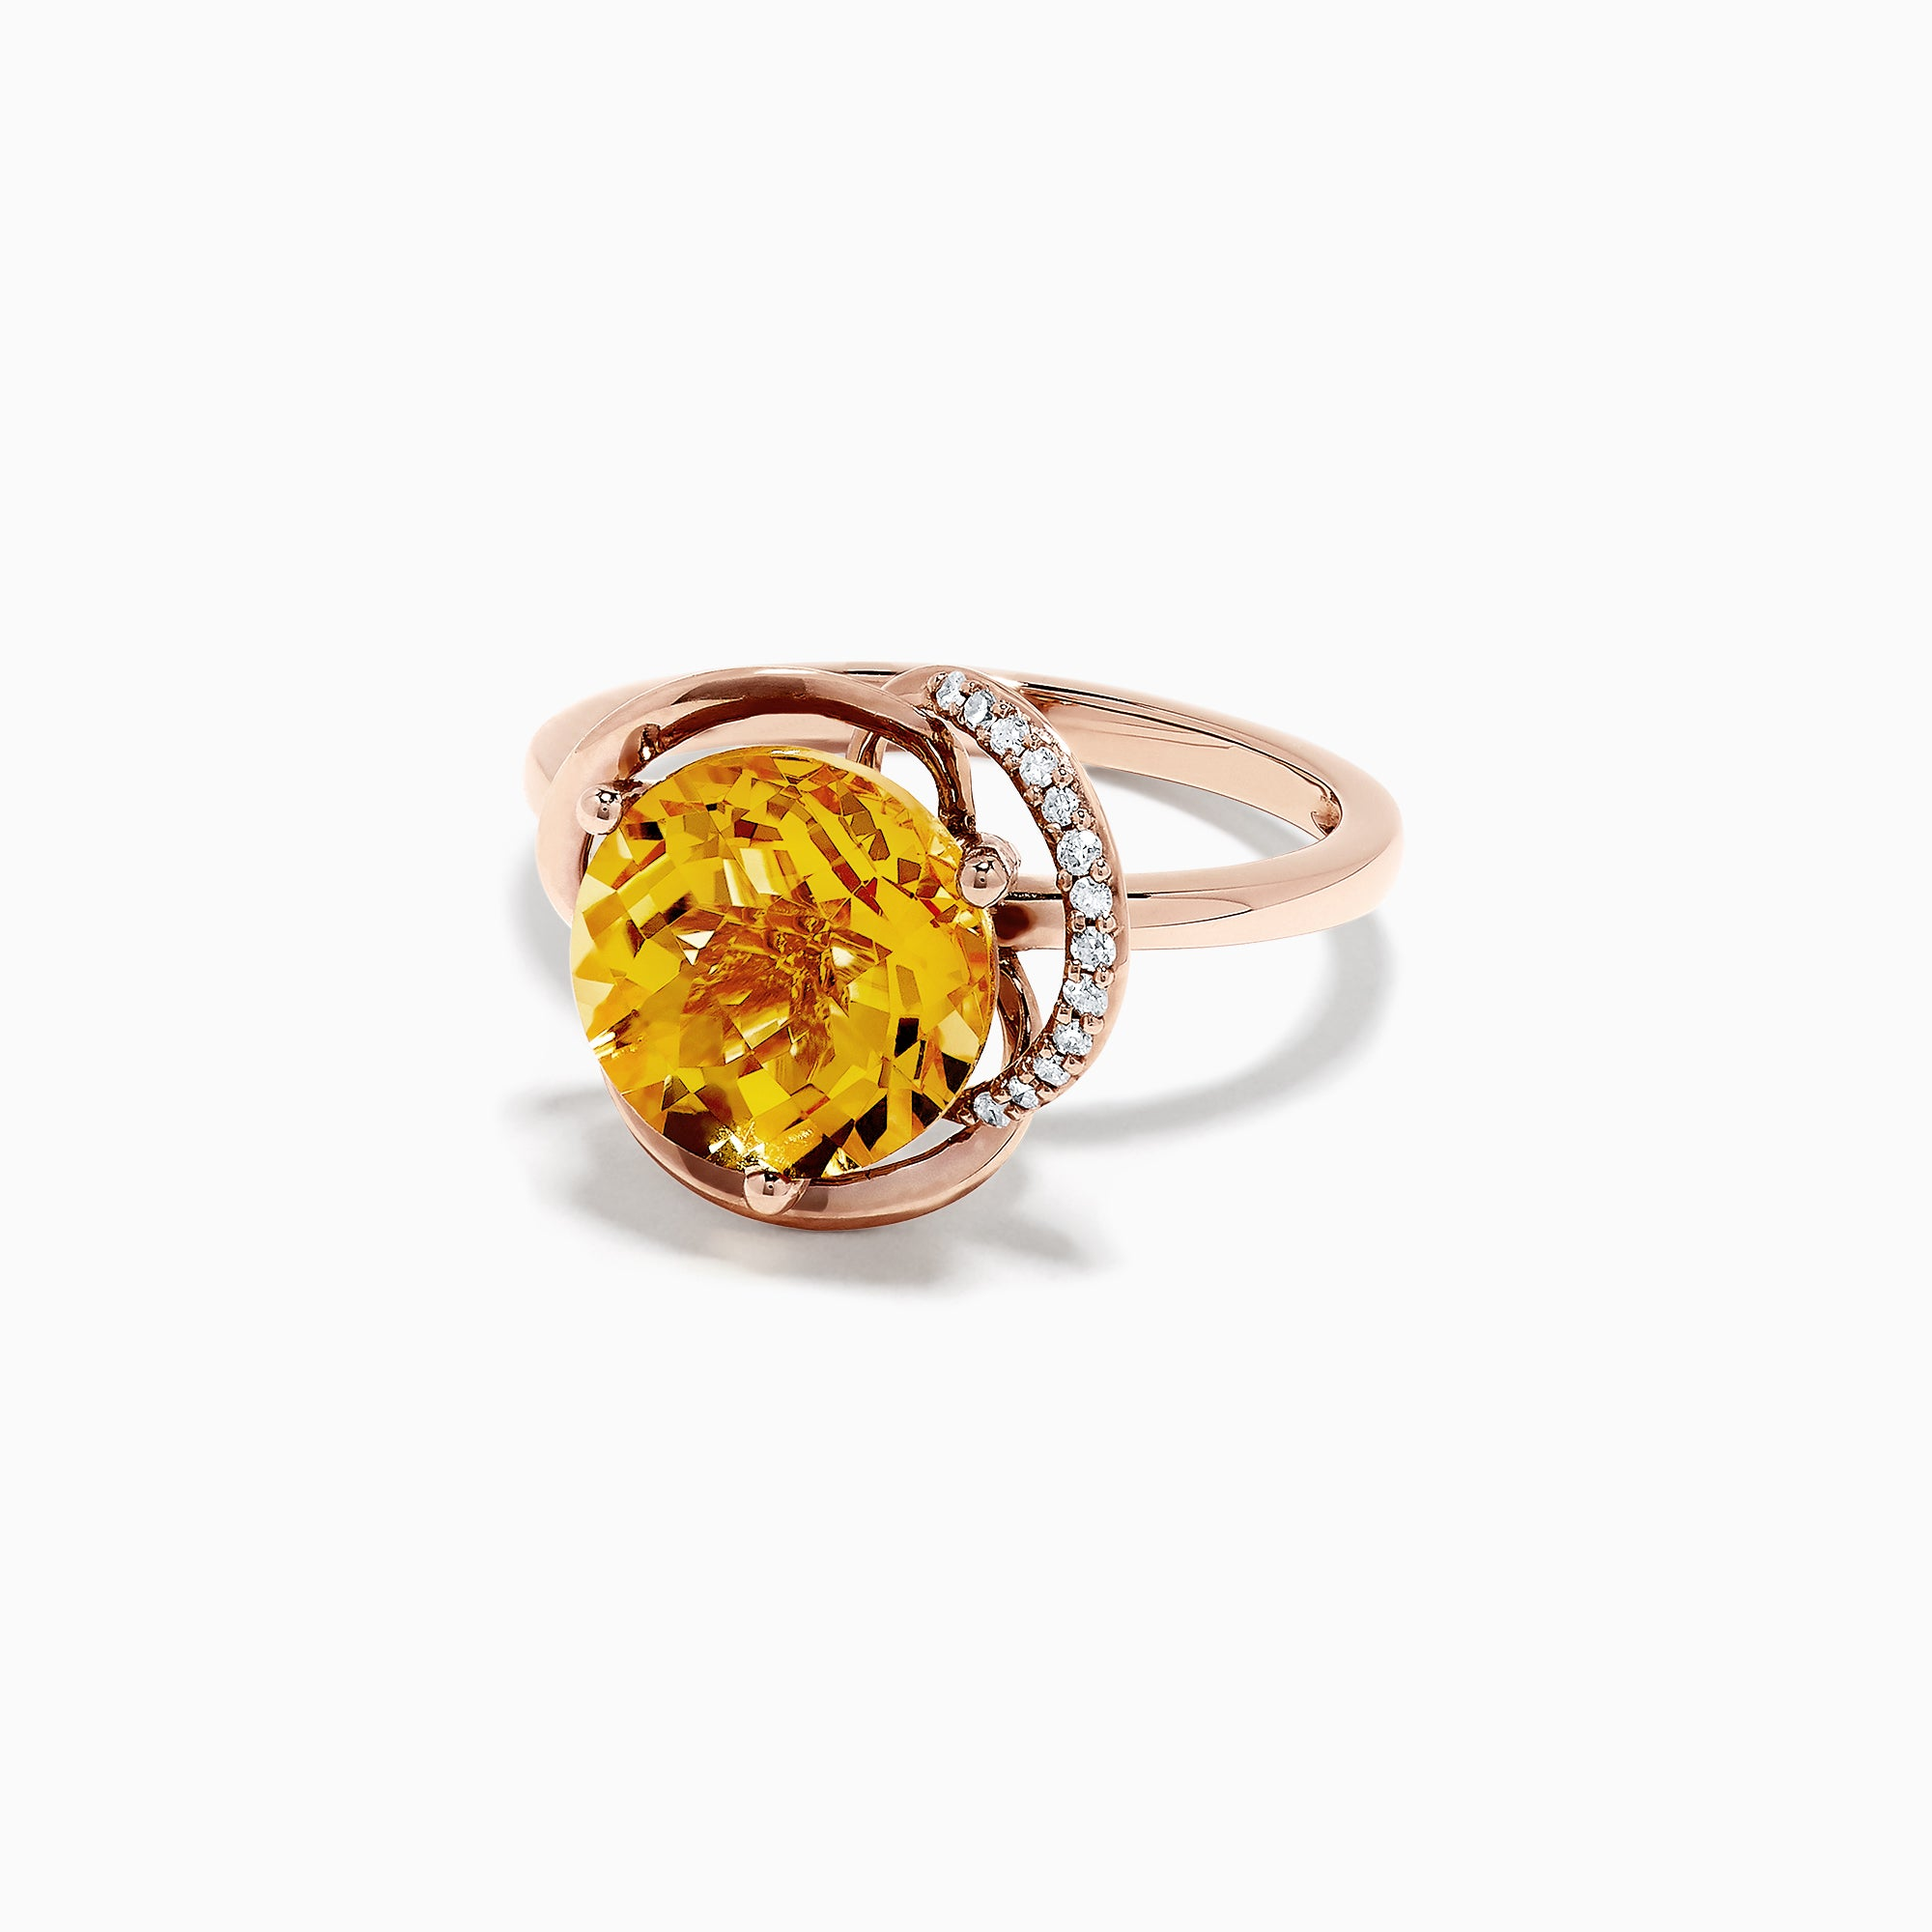 Effy Sunset 14K Rose Gold Citrine and Diamond Ring, 3.15 TCW